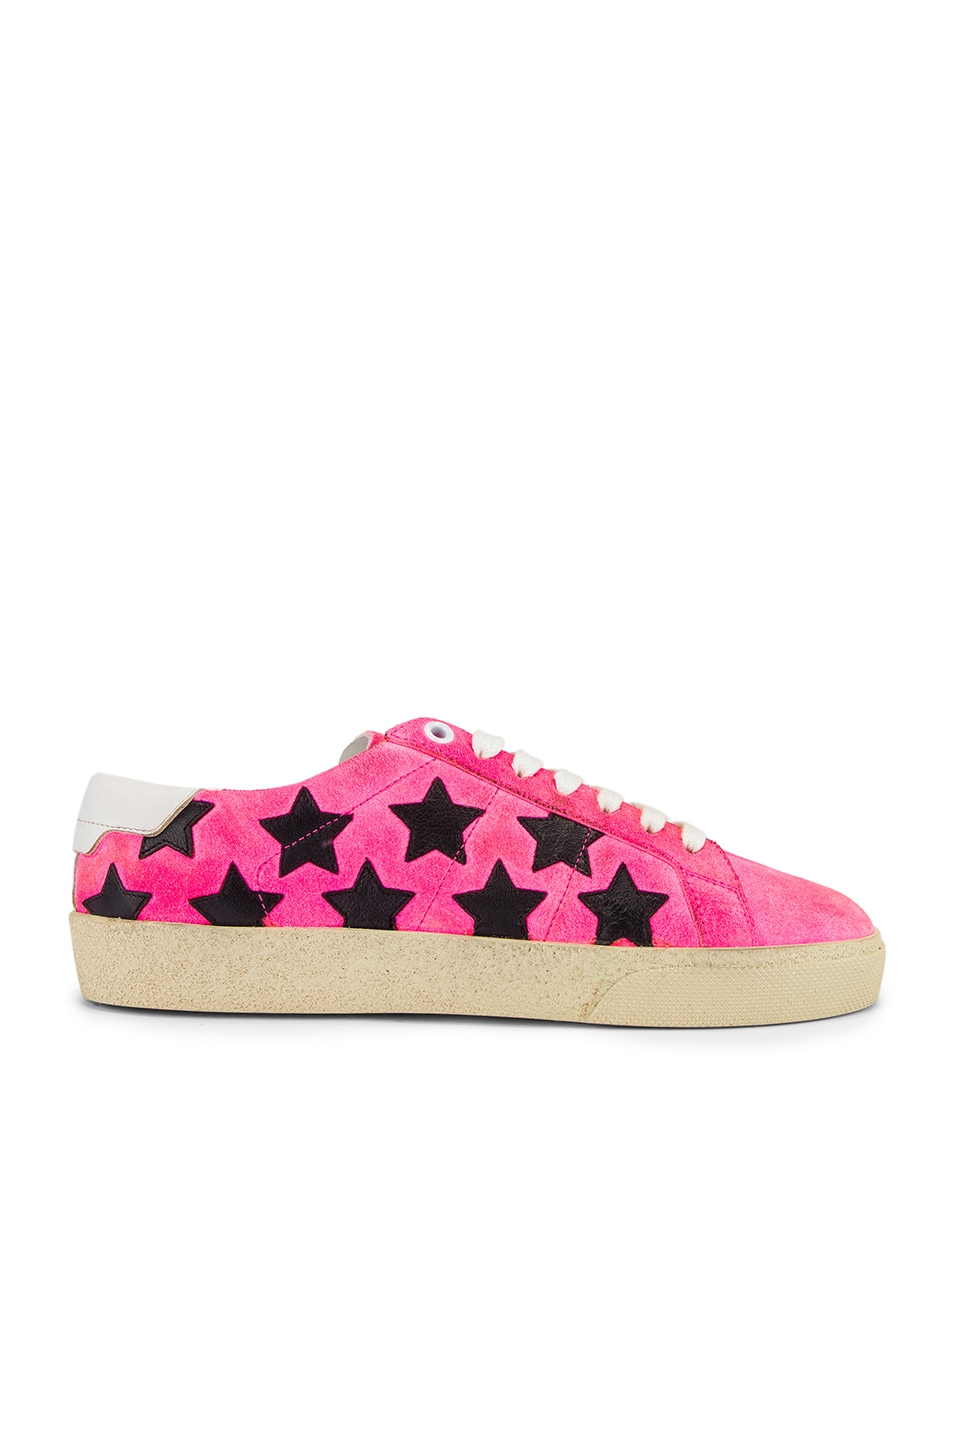 Image 1 of Saint Laurent Star Low Top Sneakers in Pink & Black